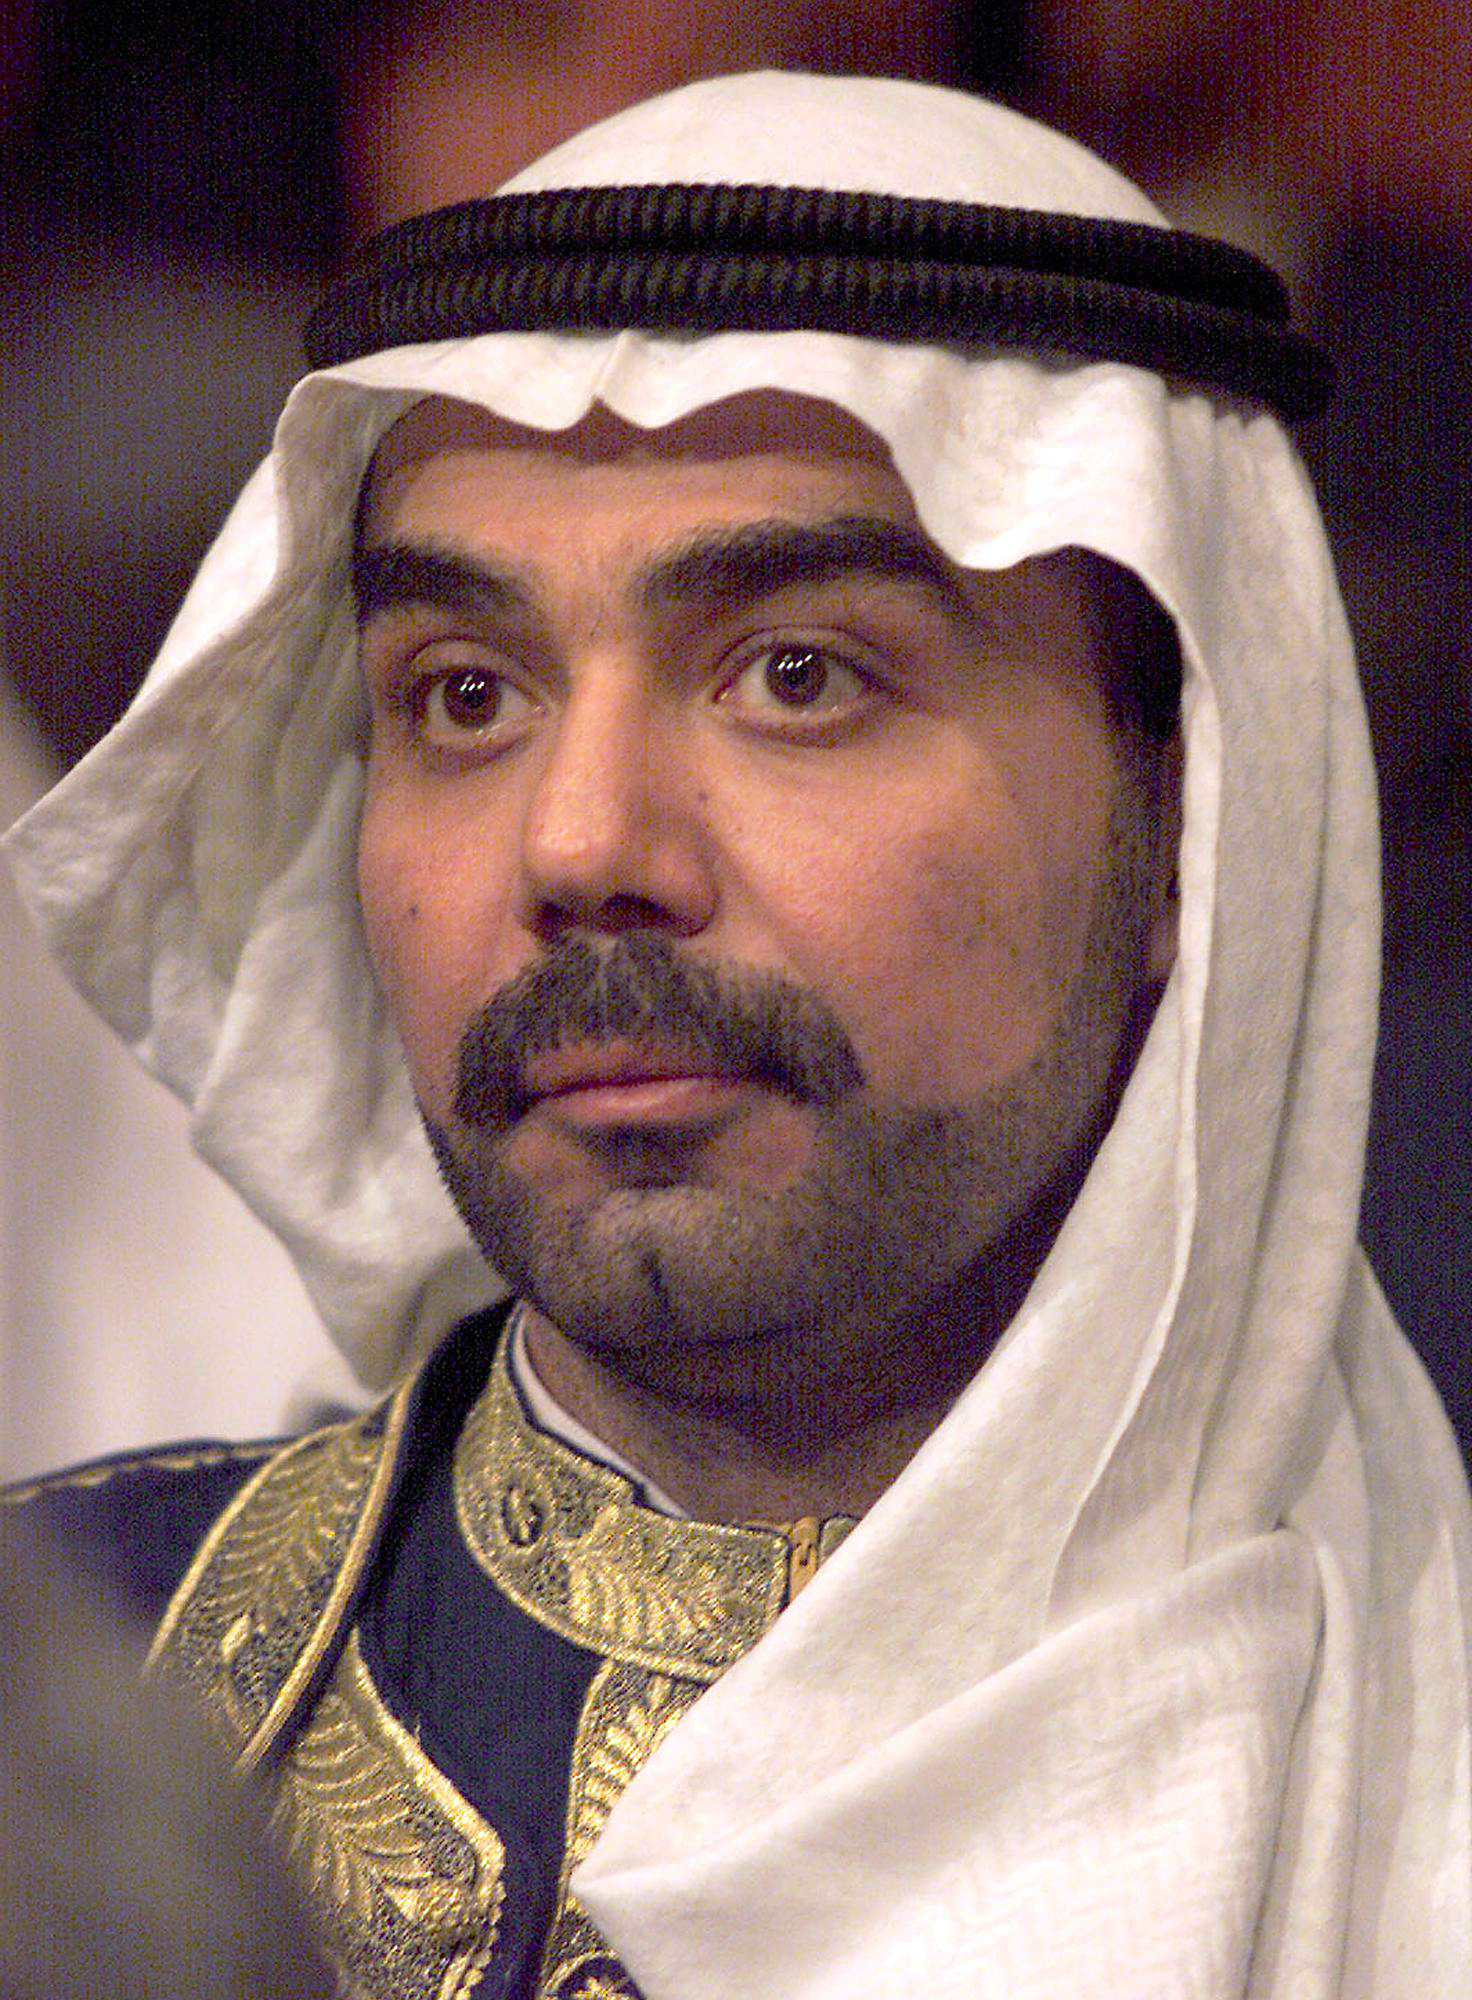 <b>$15 million: Uday Hussein (removed)</b>                                   Uday Hussein was the eldest son of Saddam Hussein, but was too violent and erratic even for his father. Because of his brutal, psychopathic behavior, Uday was denied much real state power. Uday was killed by a U.S. Task Force in Mosul in 2003.